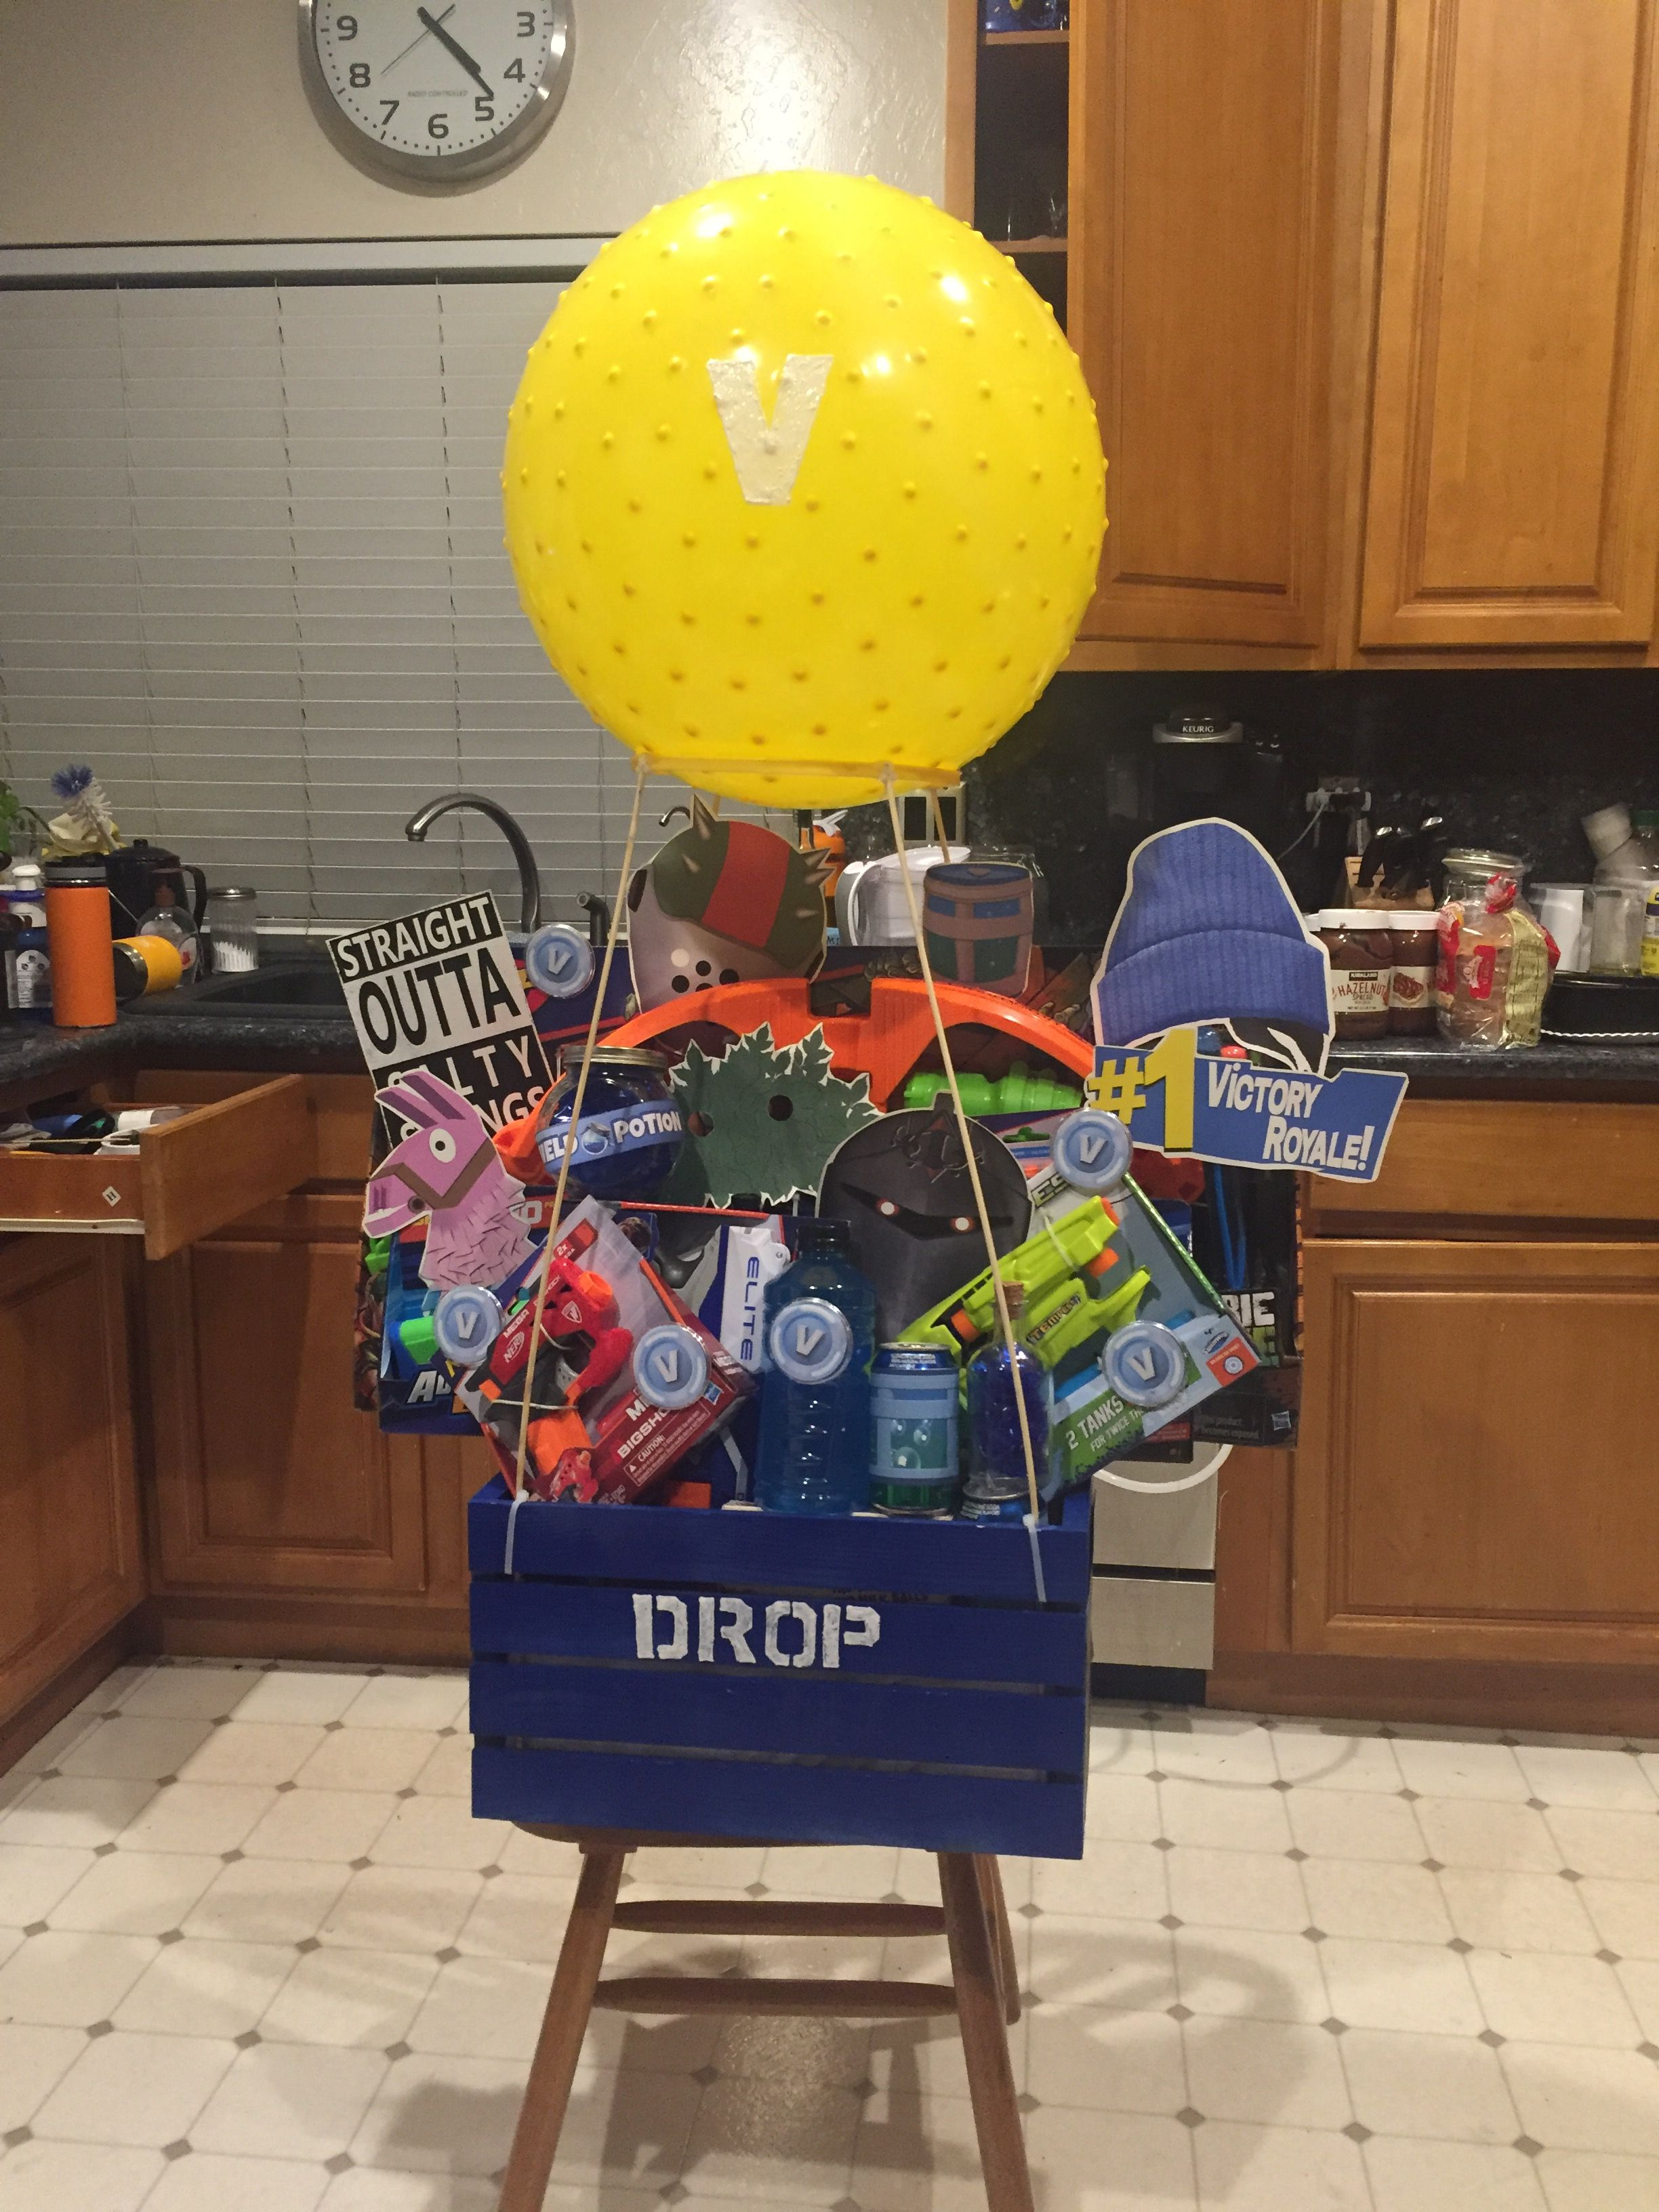 Fortnite Loot Drop Raffle Basket 2018 | Party Time | 10th